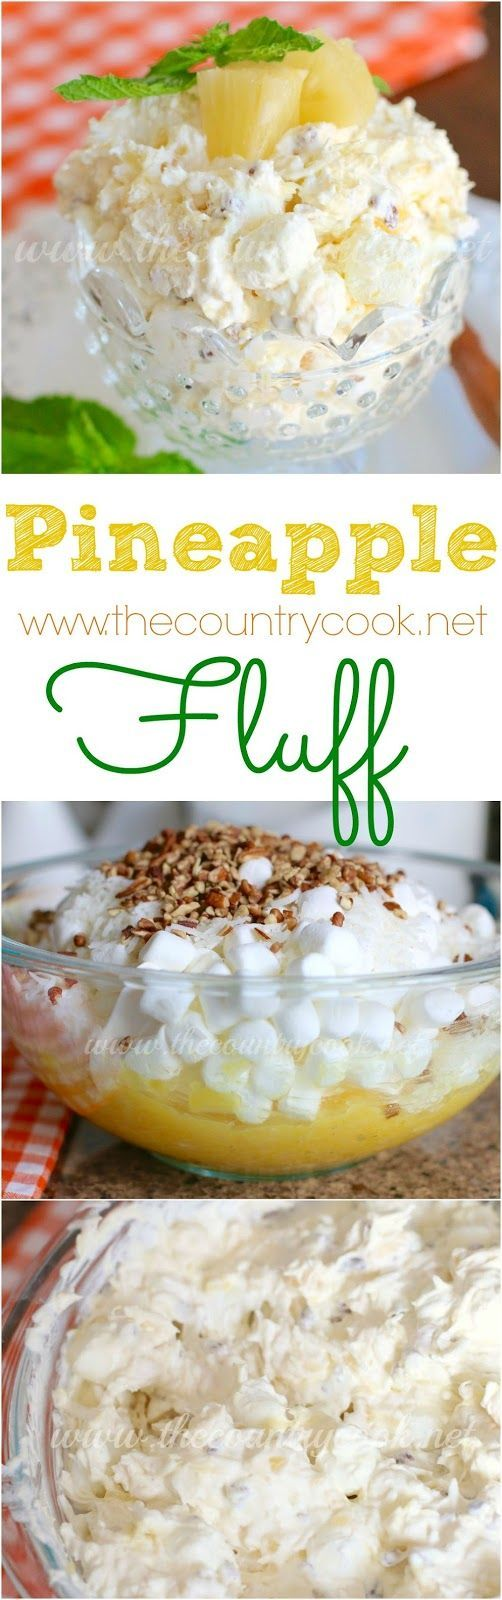 "PINEAPPLE FLUFF - ""Creamy, sweet, deliciousness. We make this weekly it's that good! #dessert #summer #nobake"" YUM!! 